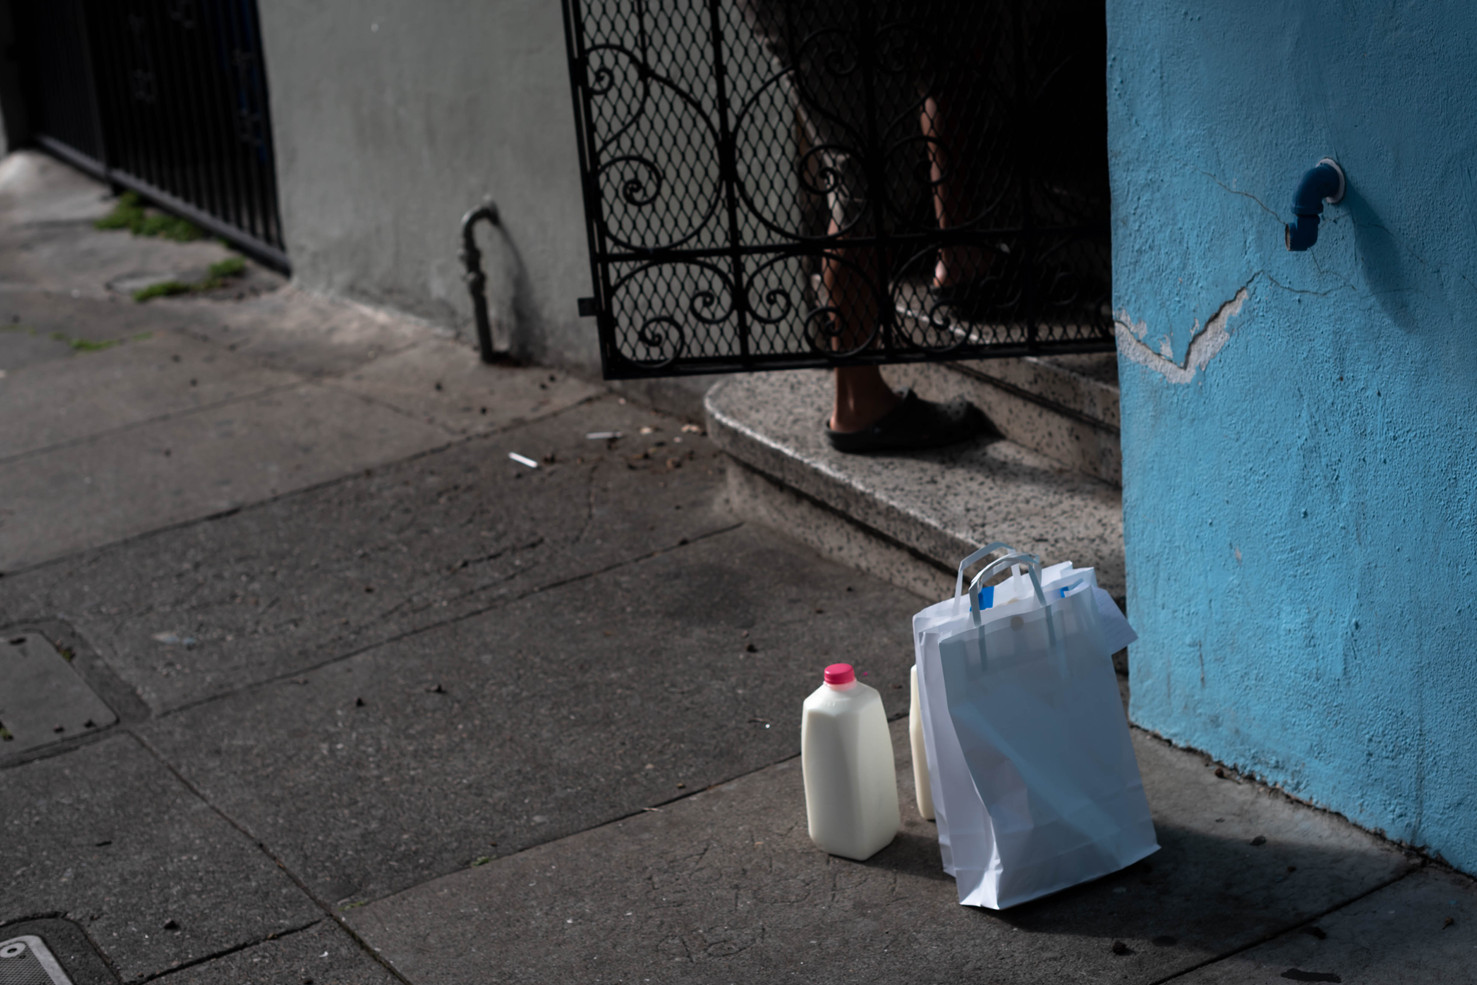 Food is delivered regularly to a Latino Cultural District community member who is tested positive for COVID-19 and under a 2 week quarantine.